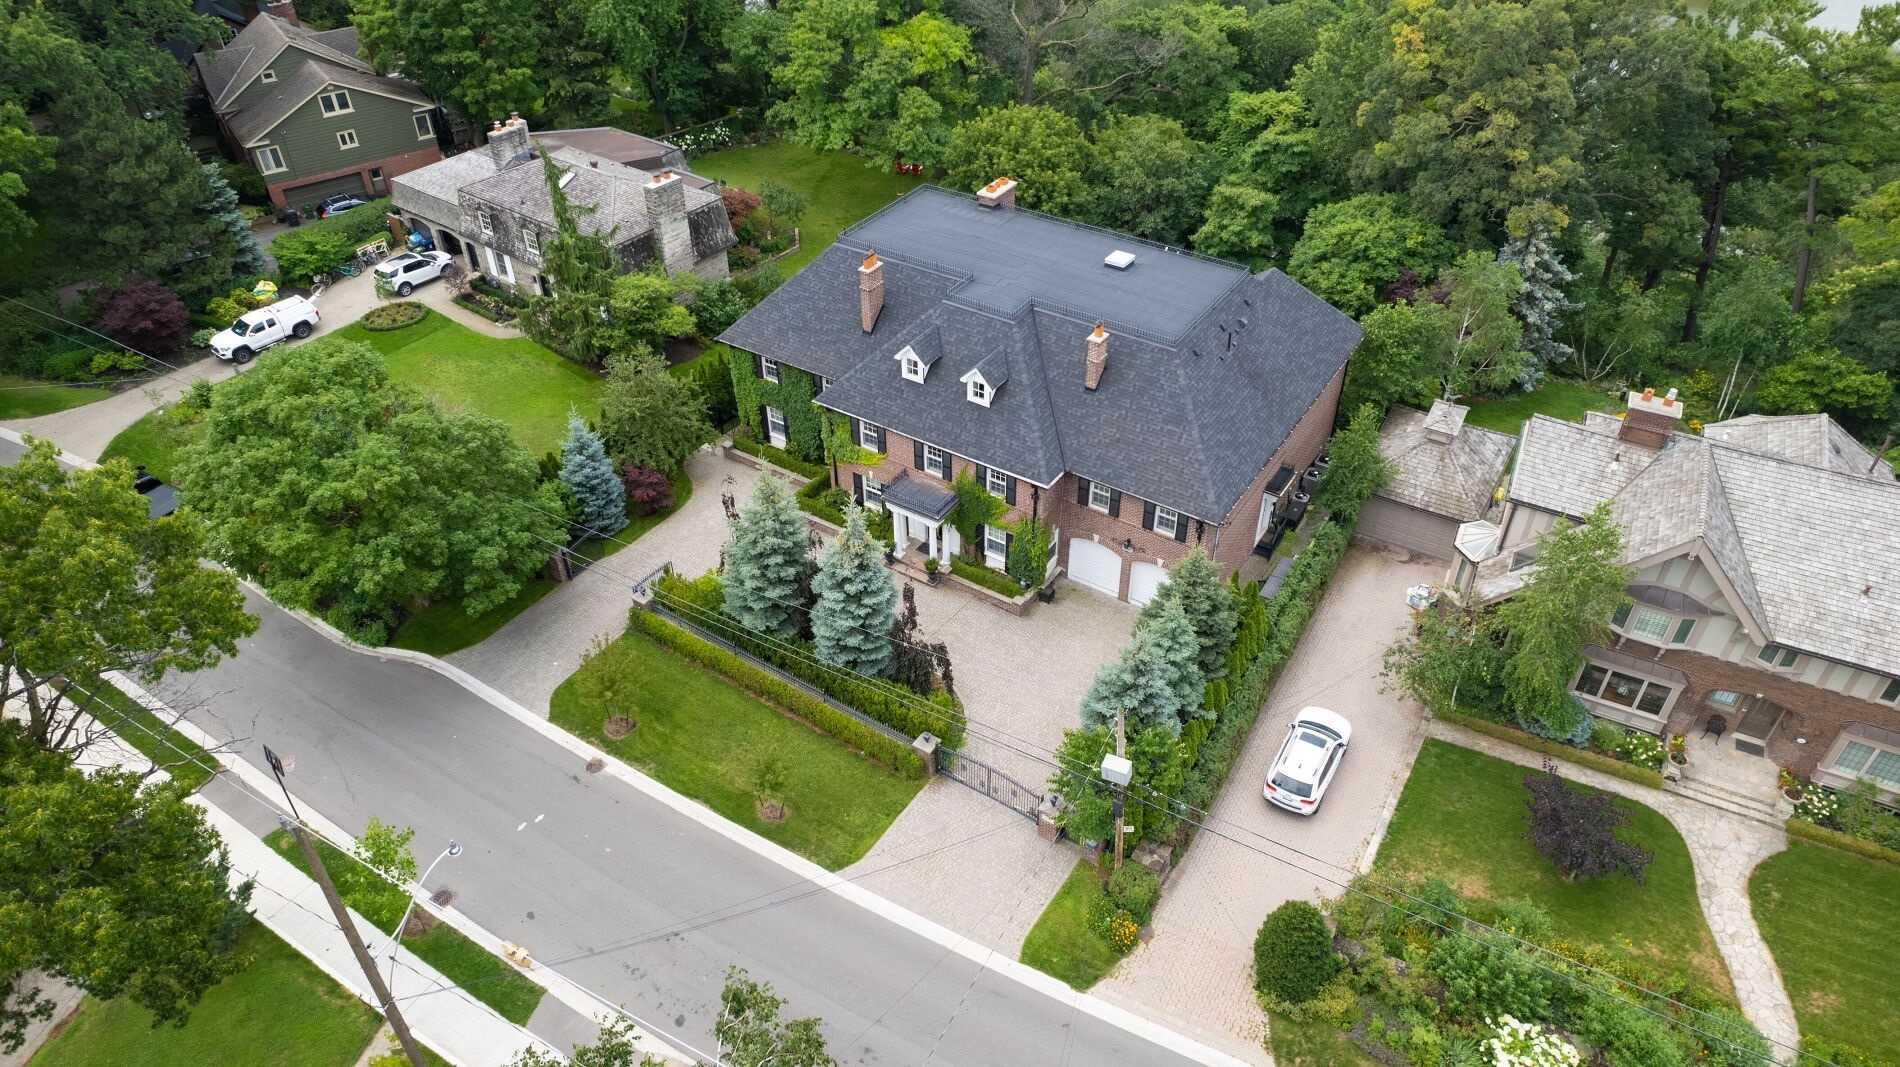 Detached house For Sale In Toronto - 246 Riverside Dr, Toronto, Ontario, Canada M6S4A9 , 6 Bedrooms Bedrooms, ,7 BathroomsBathrooms,Detached,For Sale,Riverside